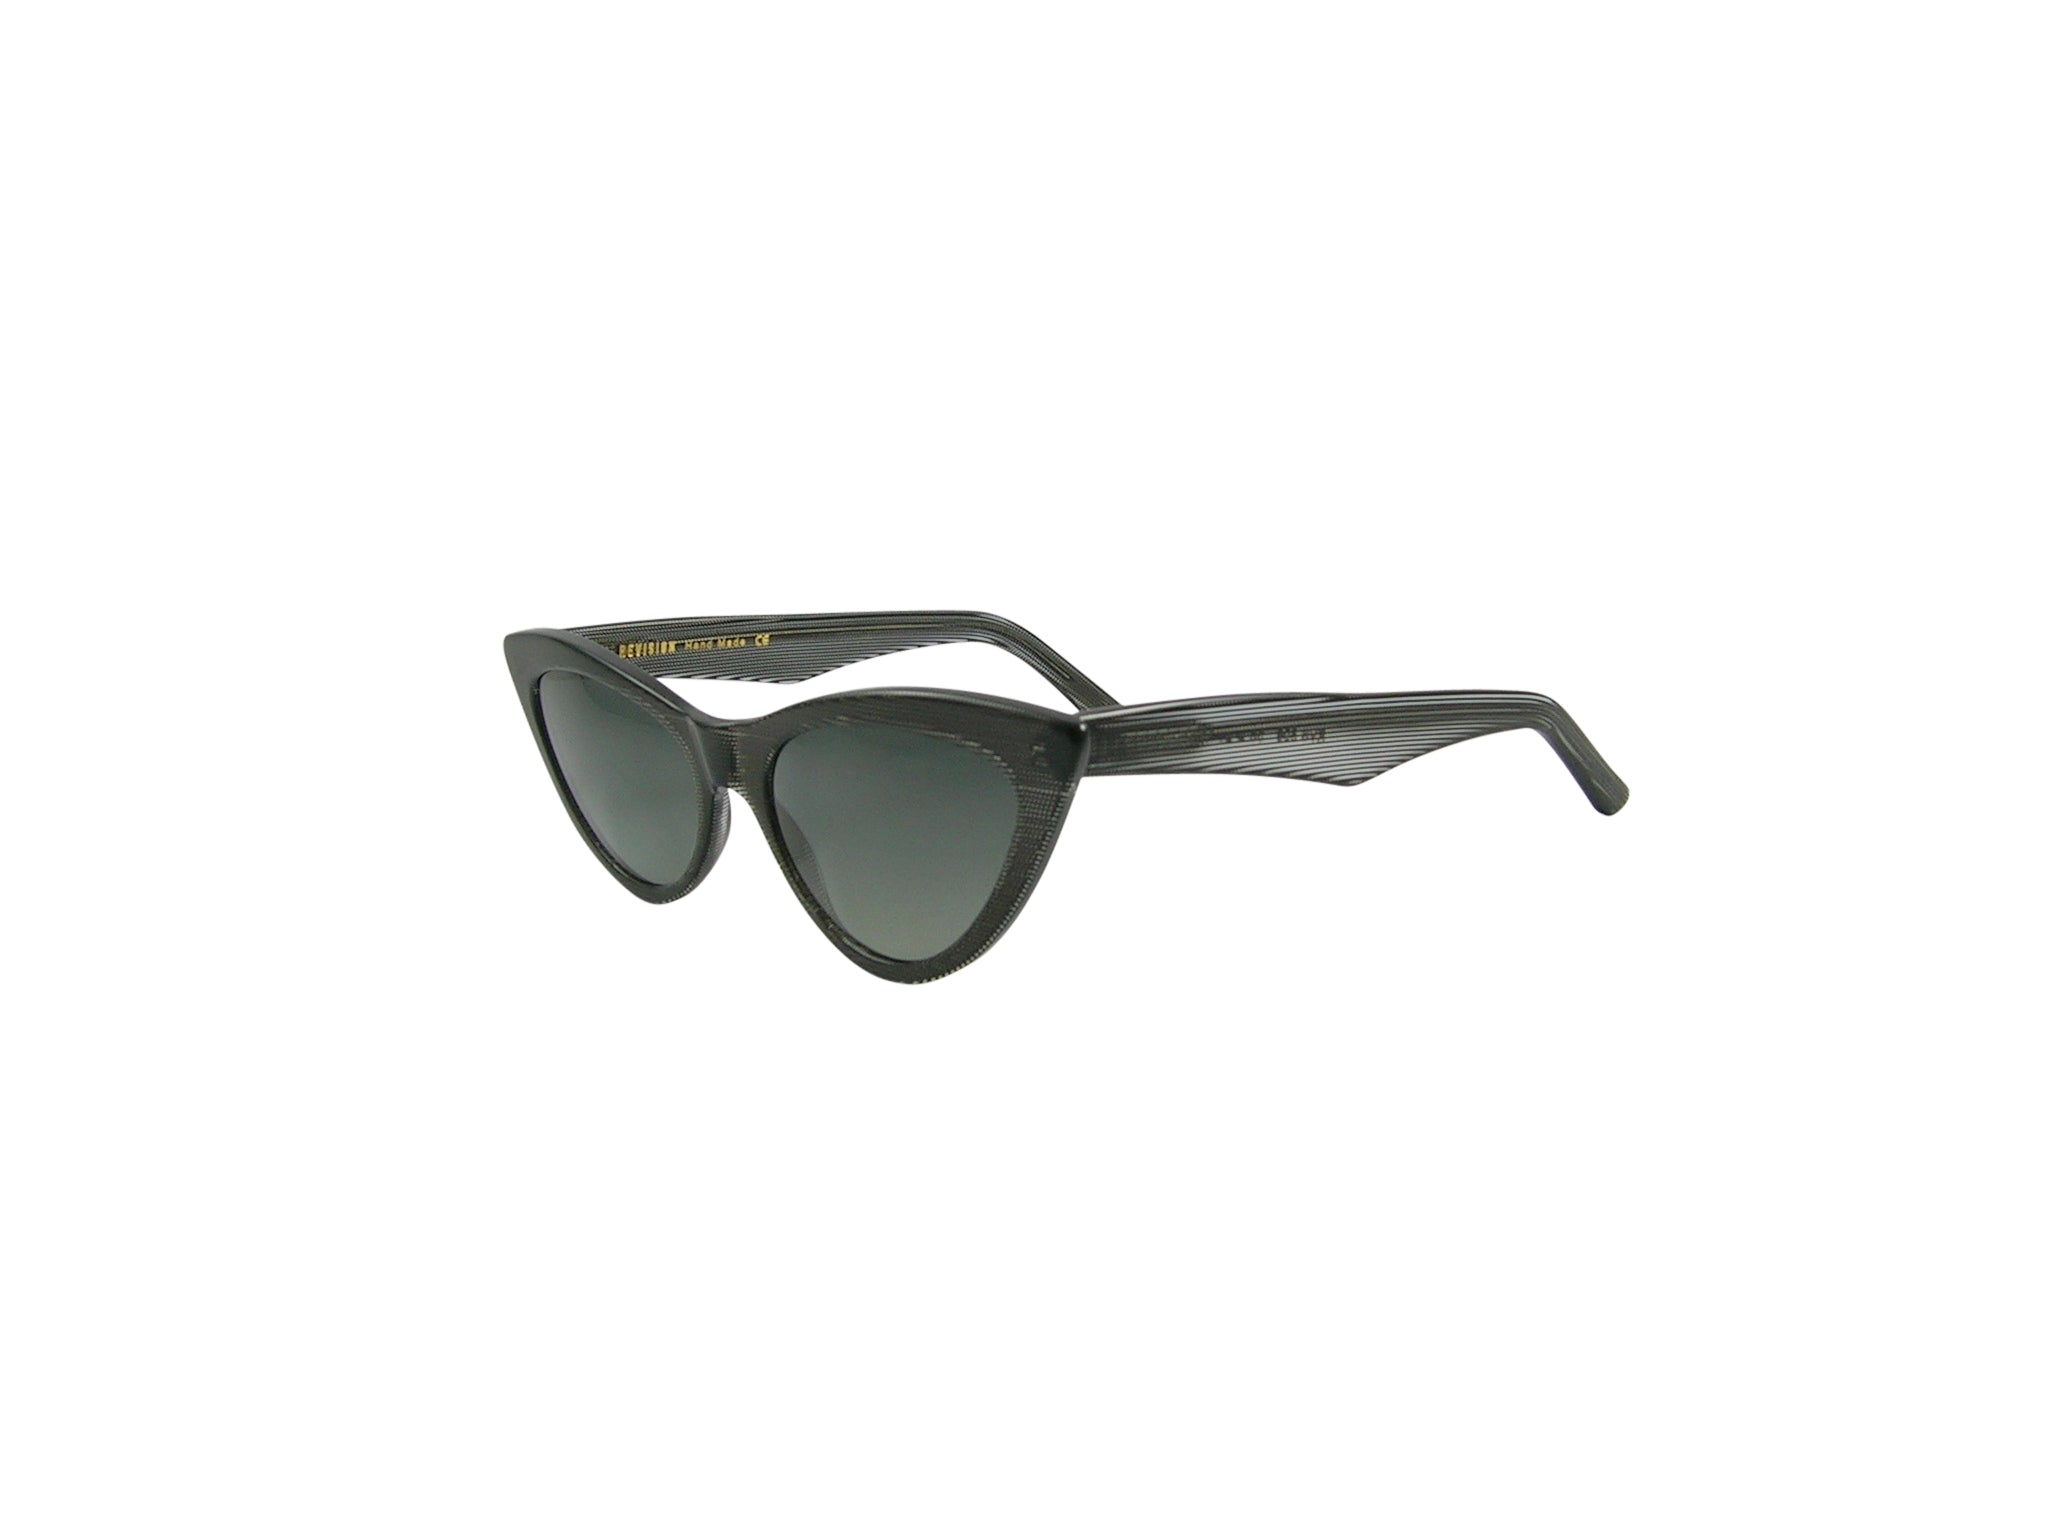 US REVISION SUNGLASSES 506